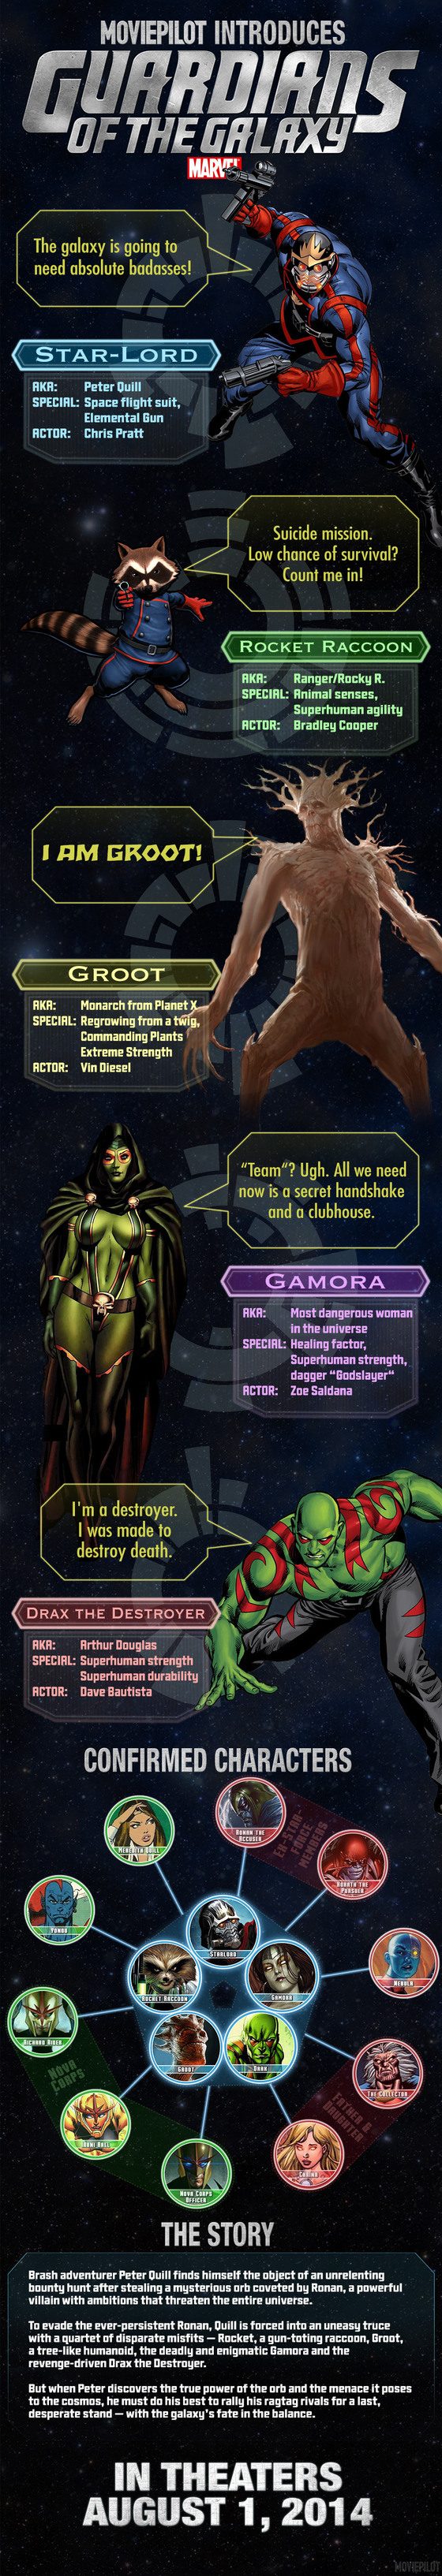 guardians-of-the-galaxy_1392459332